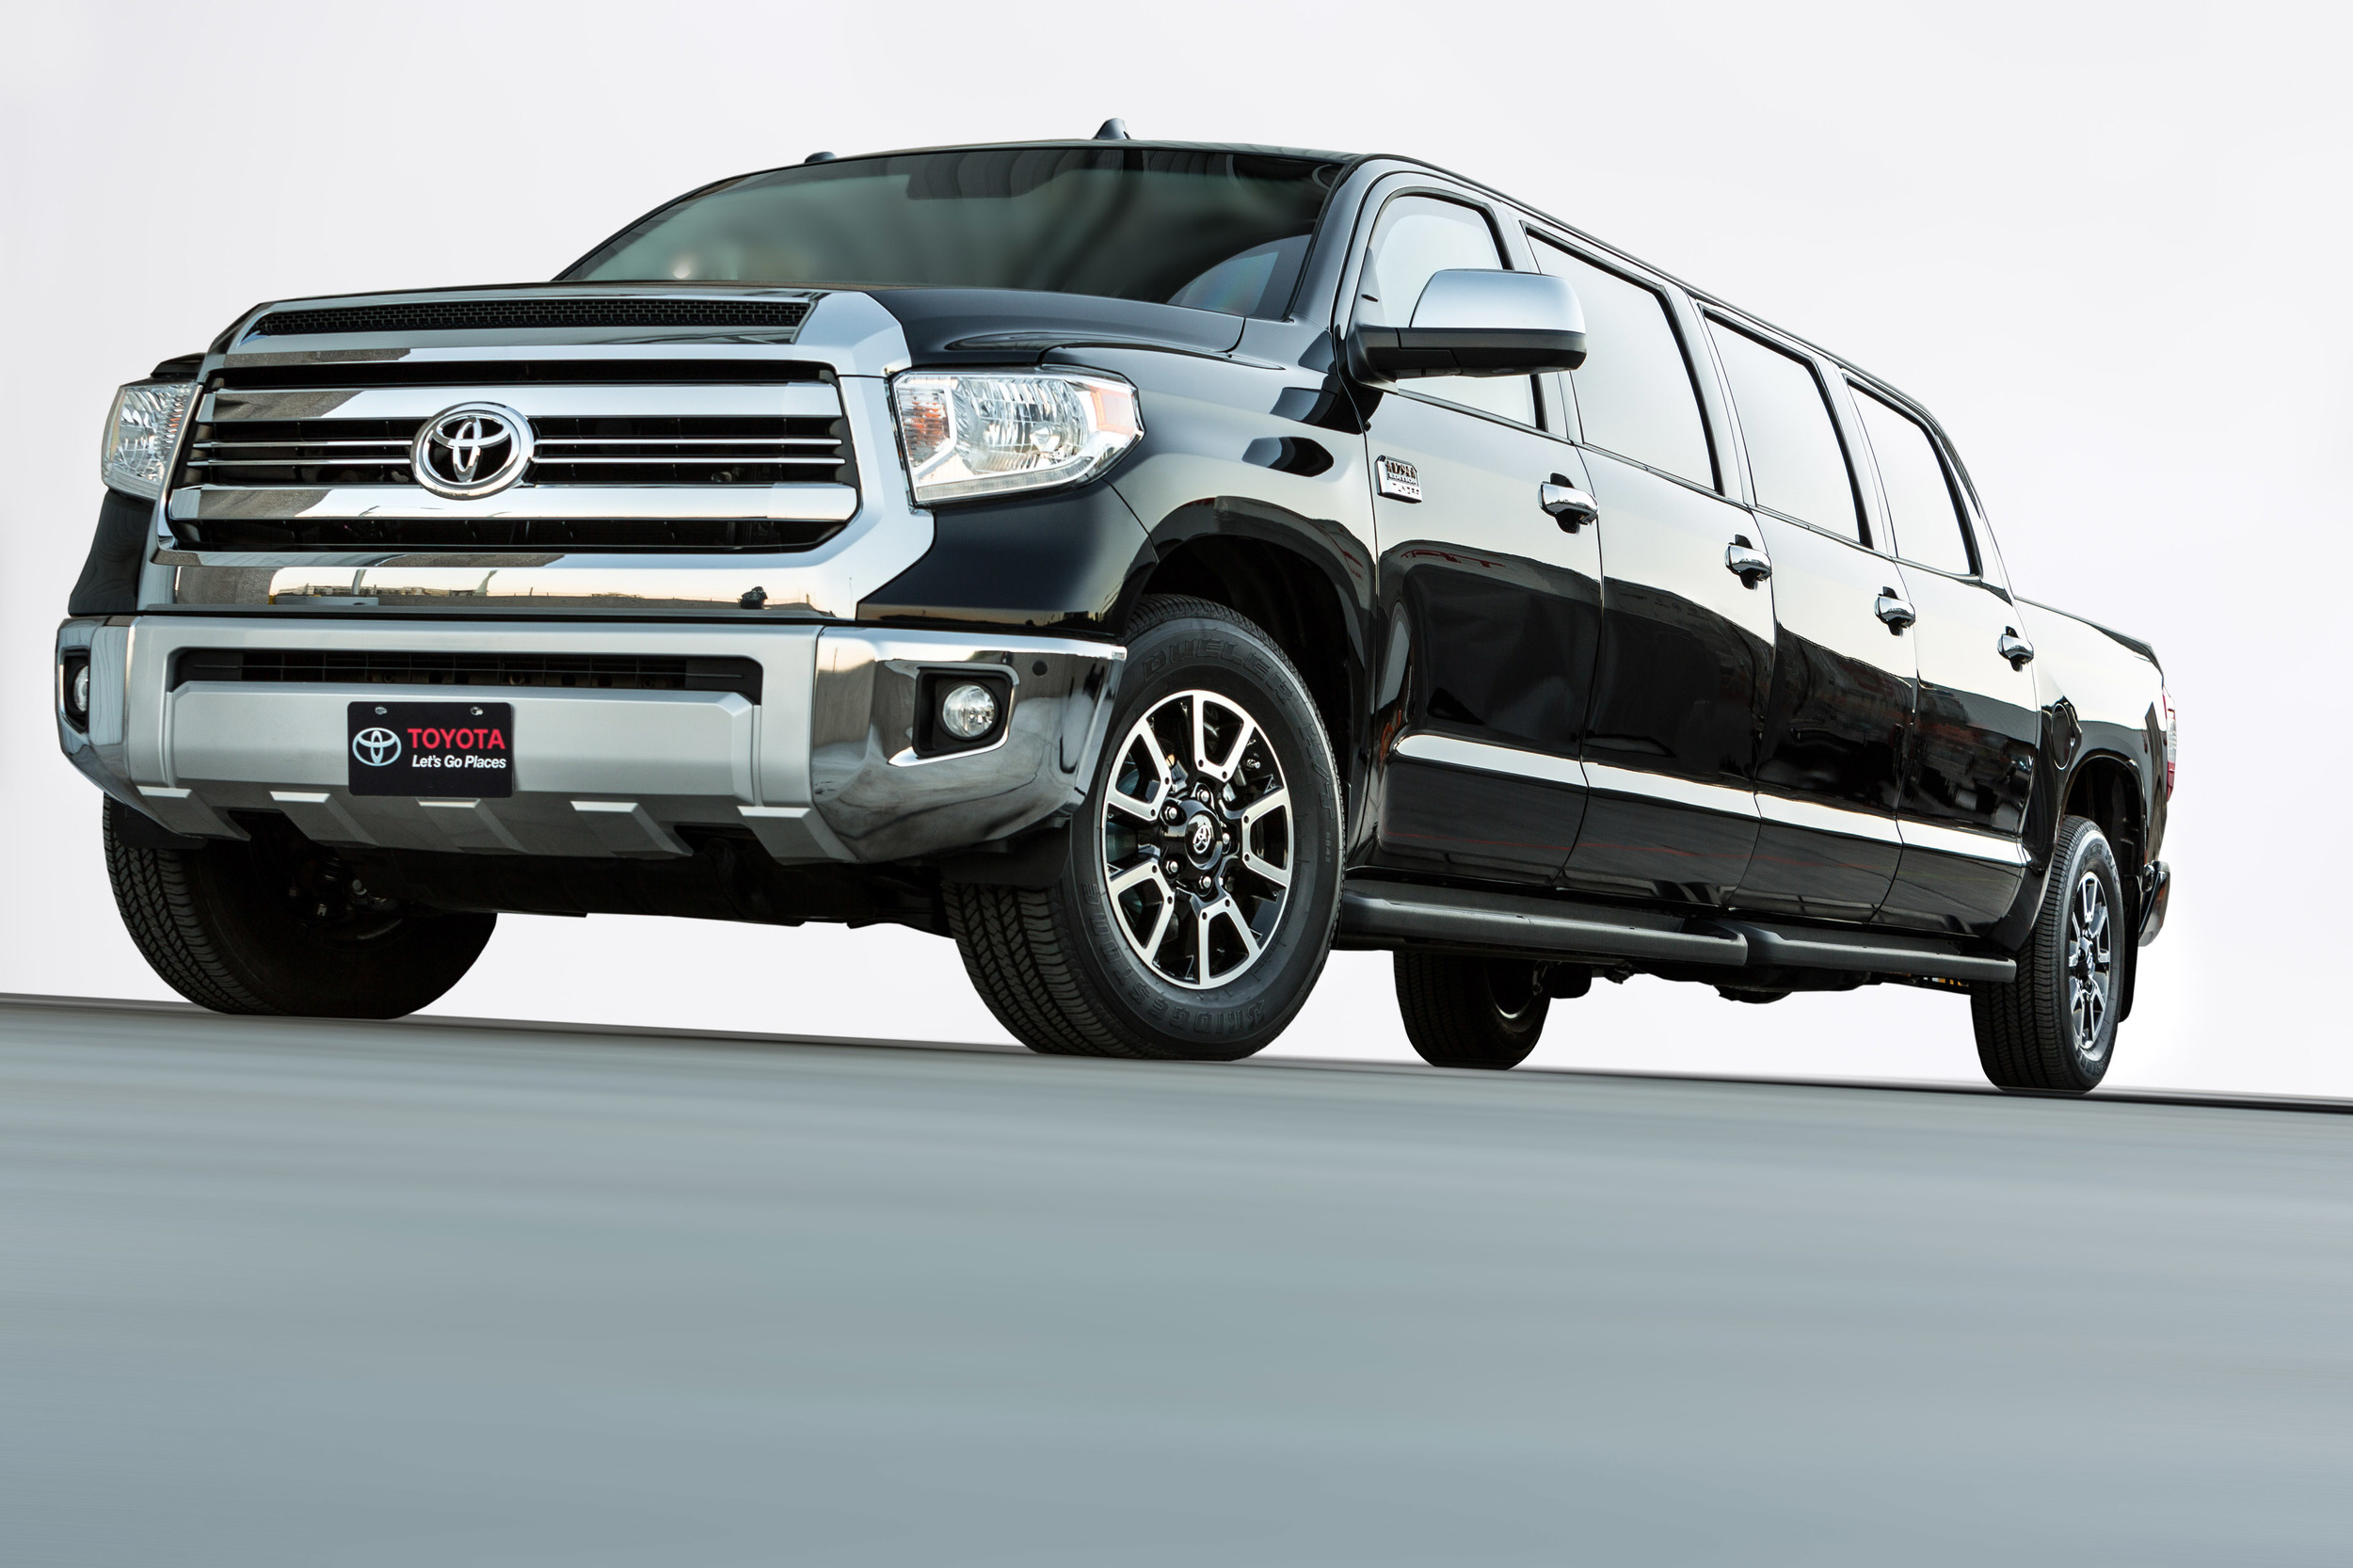 Nice Images Collection: Toyota Tundra Desktop Wallpapers